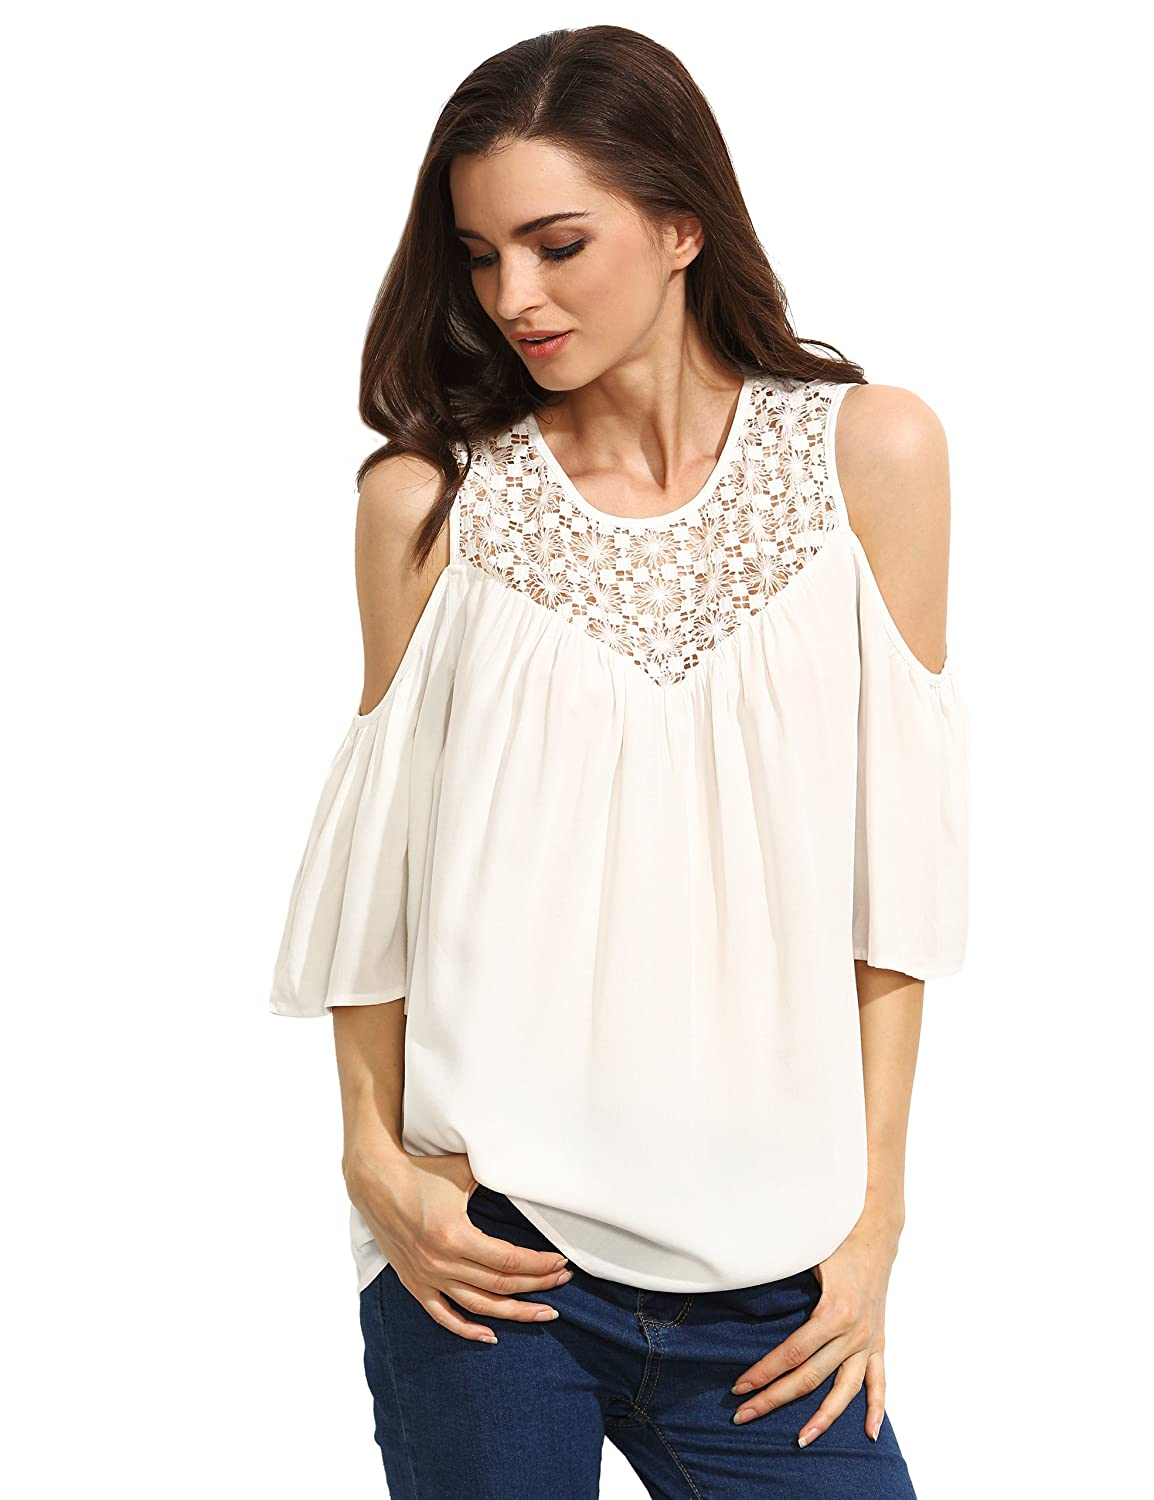 7c409b8381f Floerns Women s Casual Cold Shoulder Crochet Lace Hollow Out Tops Blouse  85%OFF